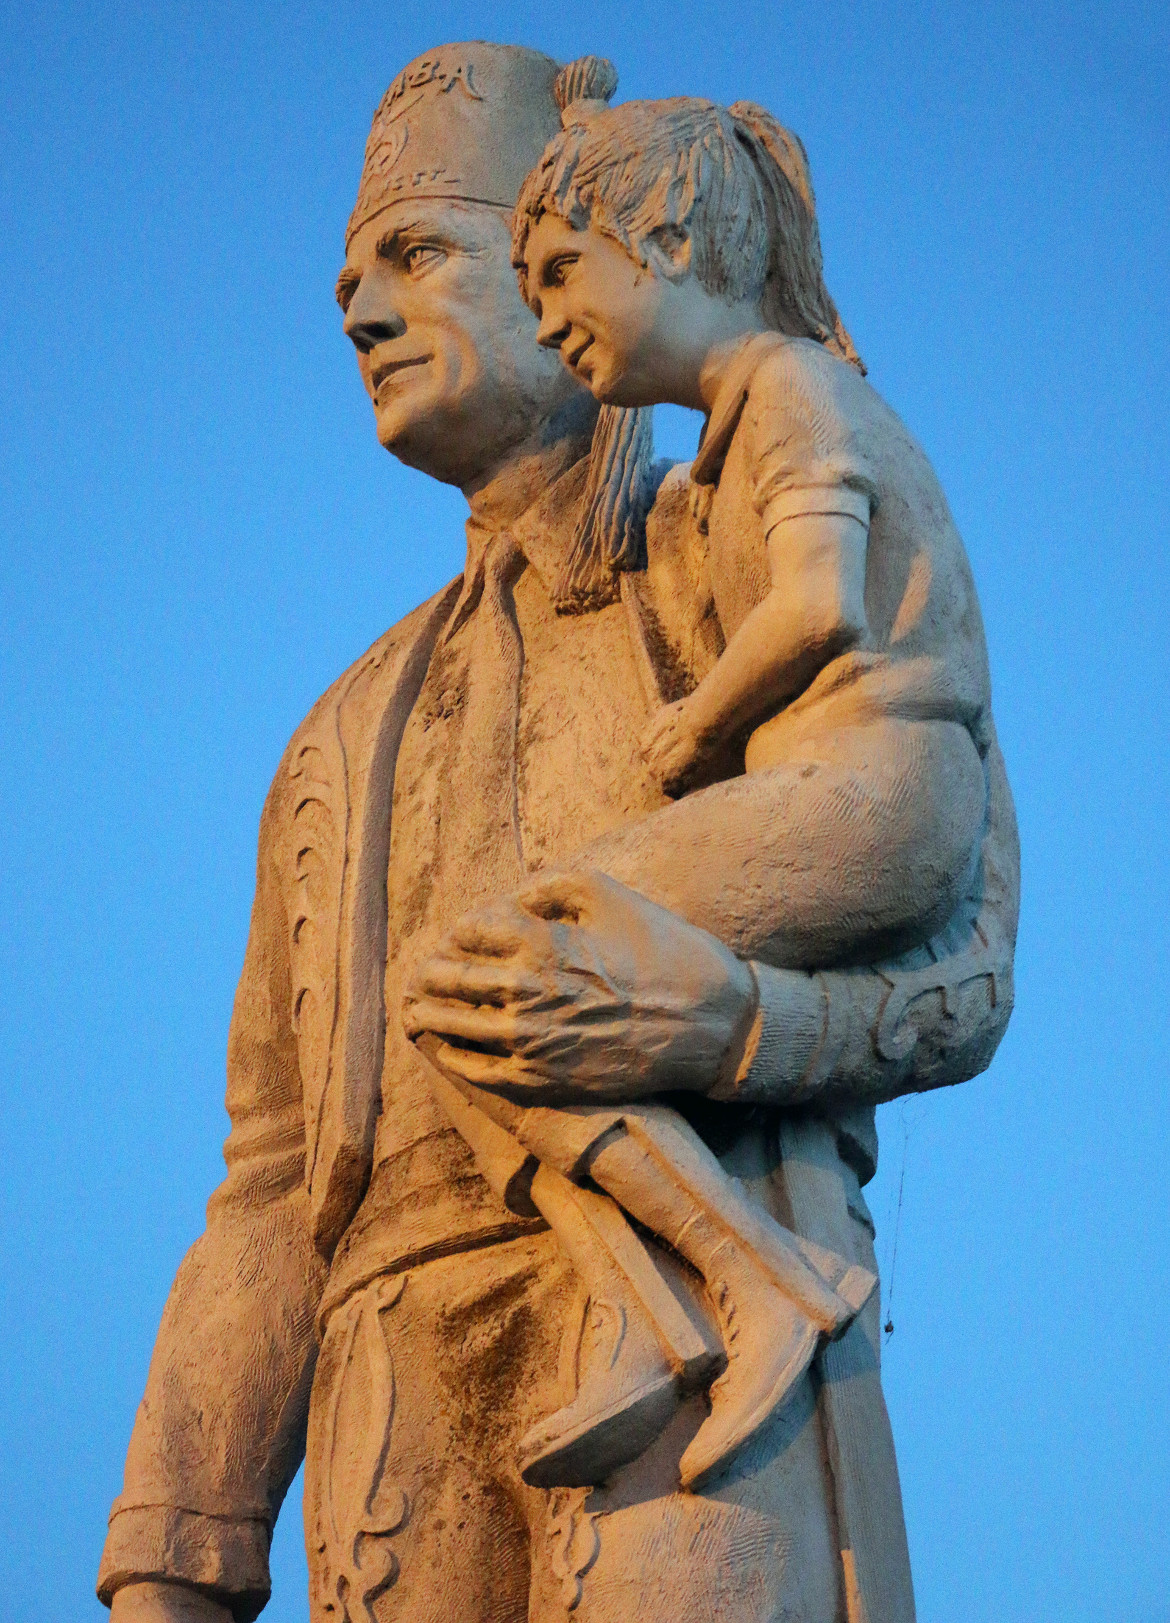 The statue at the Kaaba Shriners Masonic Center. Photo by Bruce Walters.